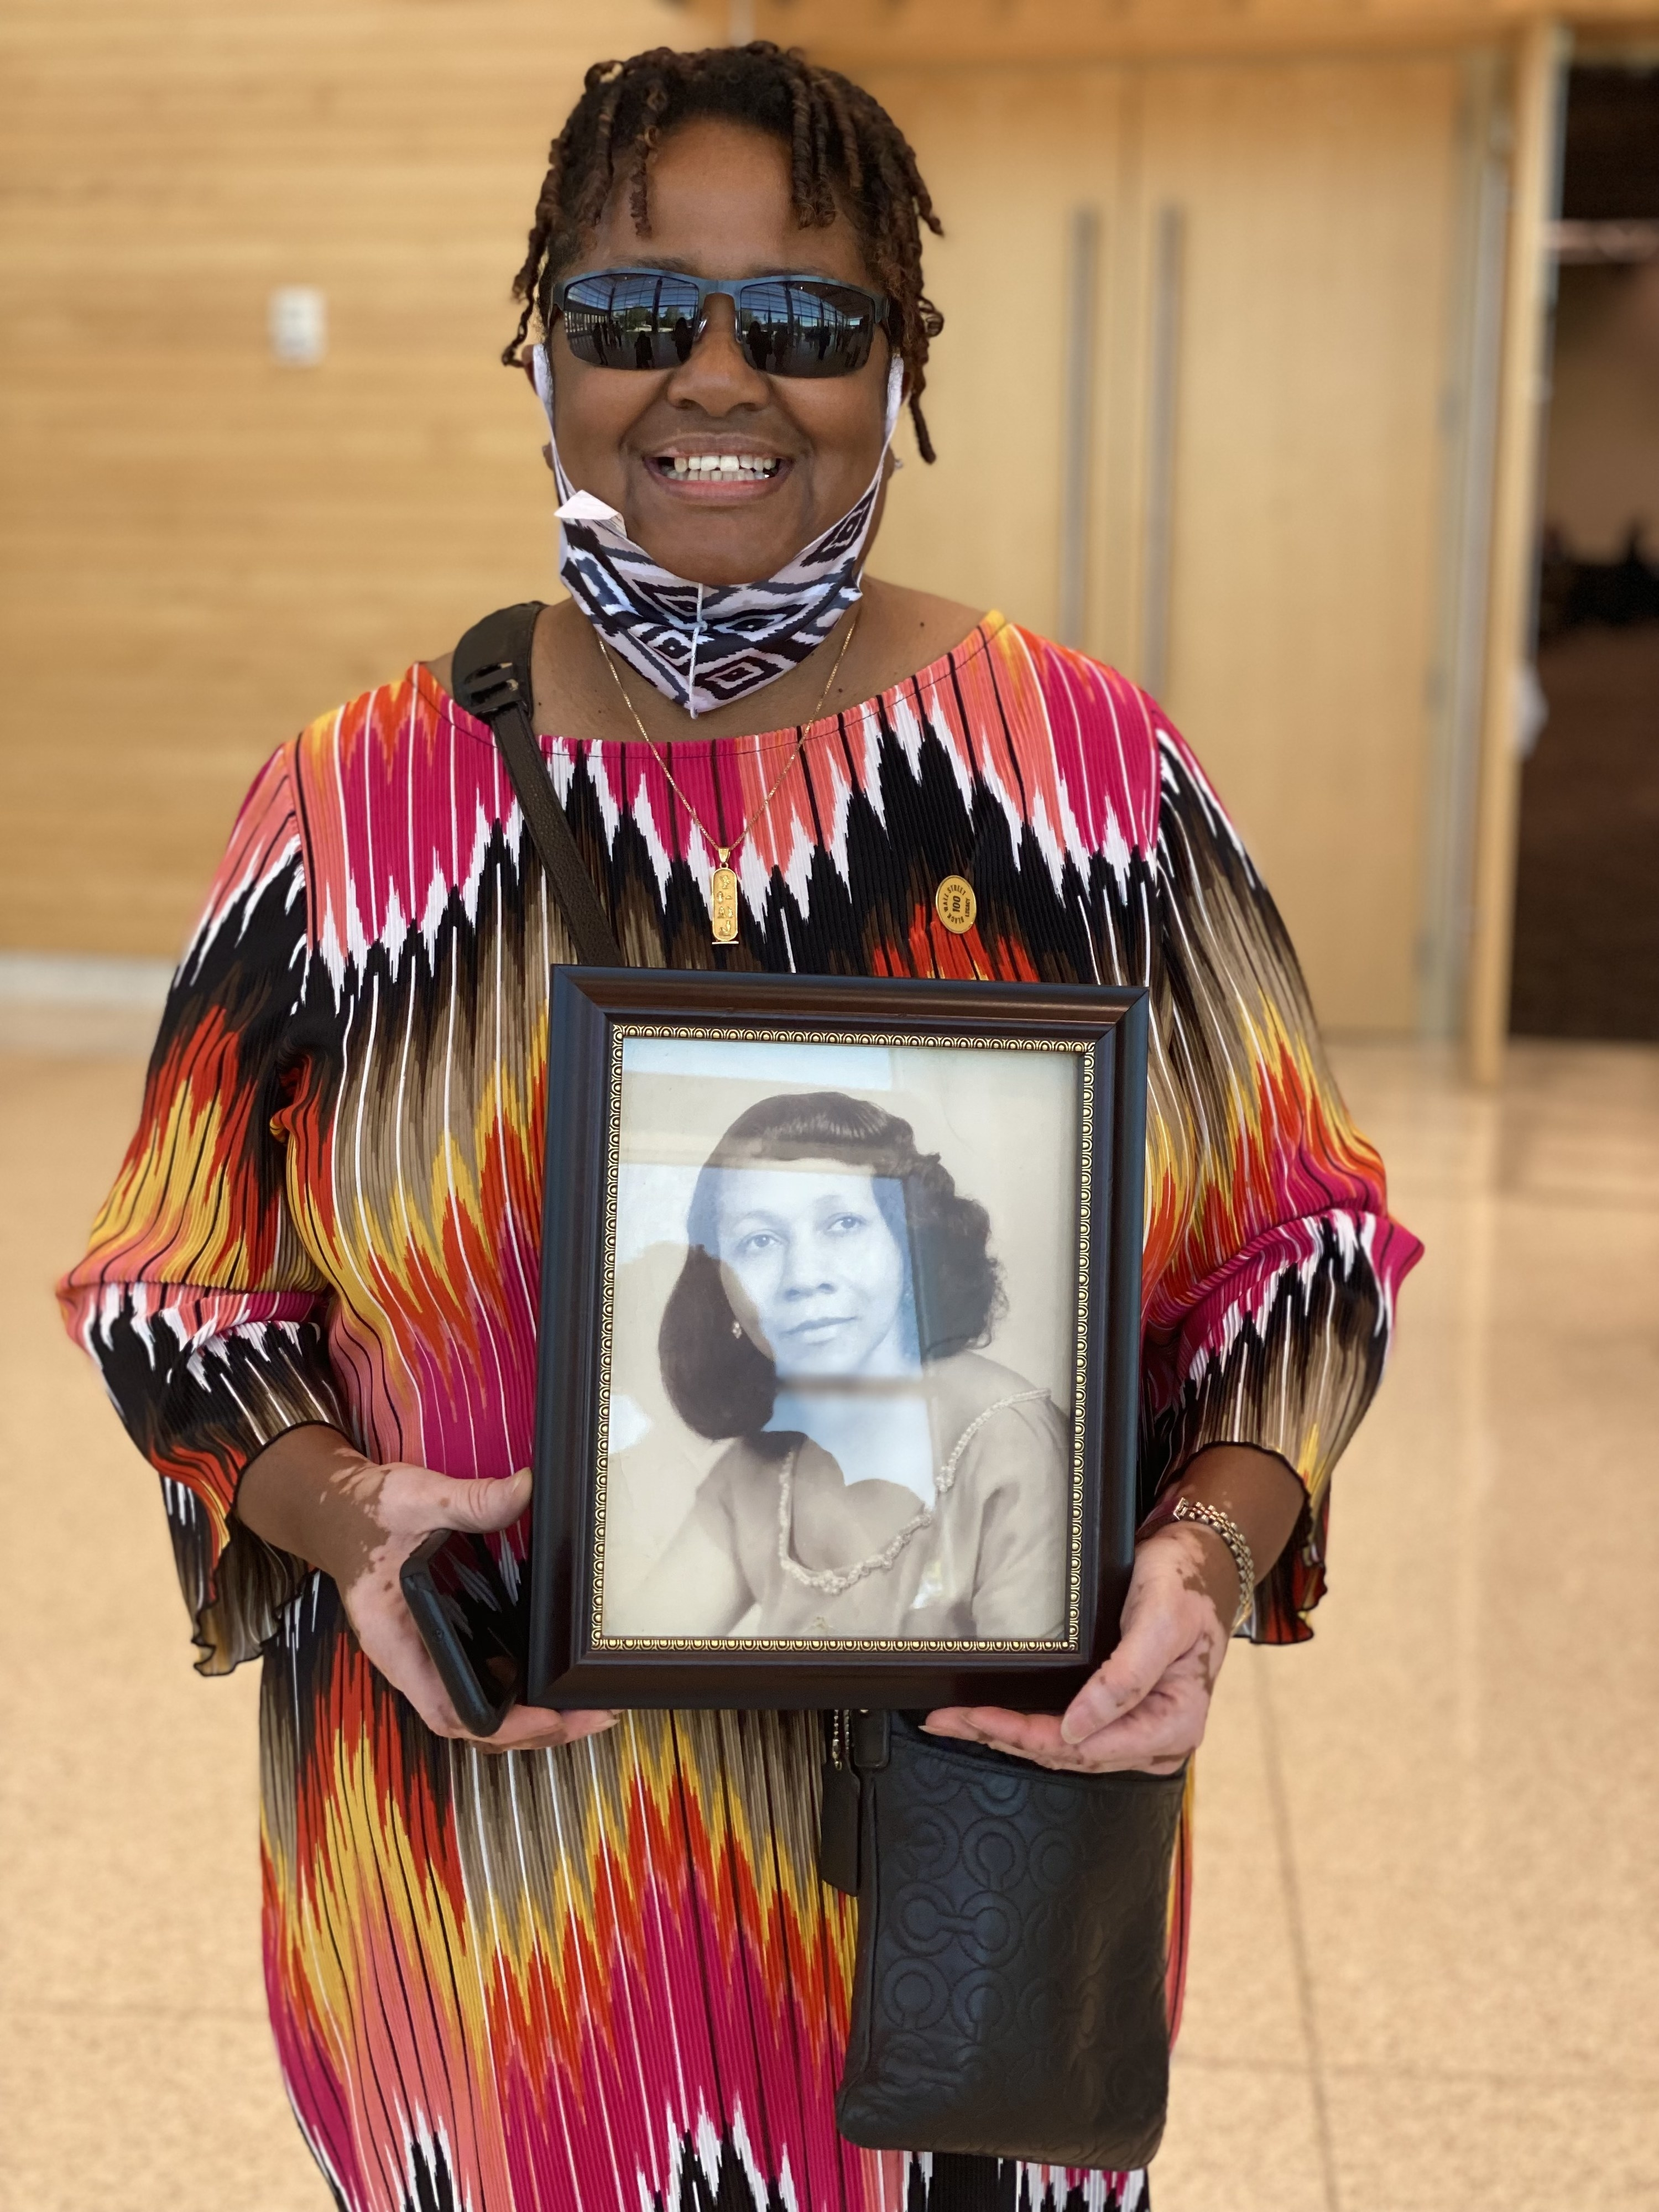 A smiling Cherri Lewis stands while holding a framed photo of her grandmother